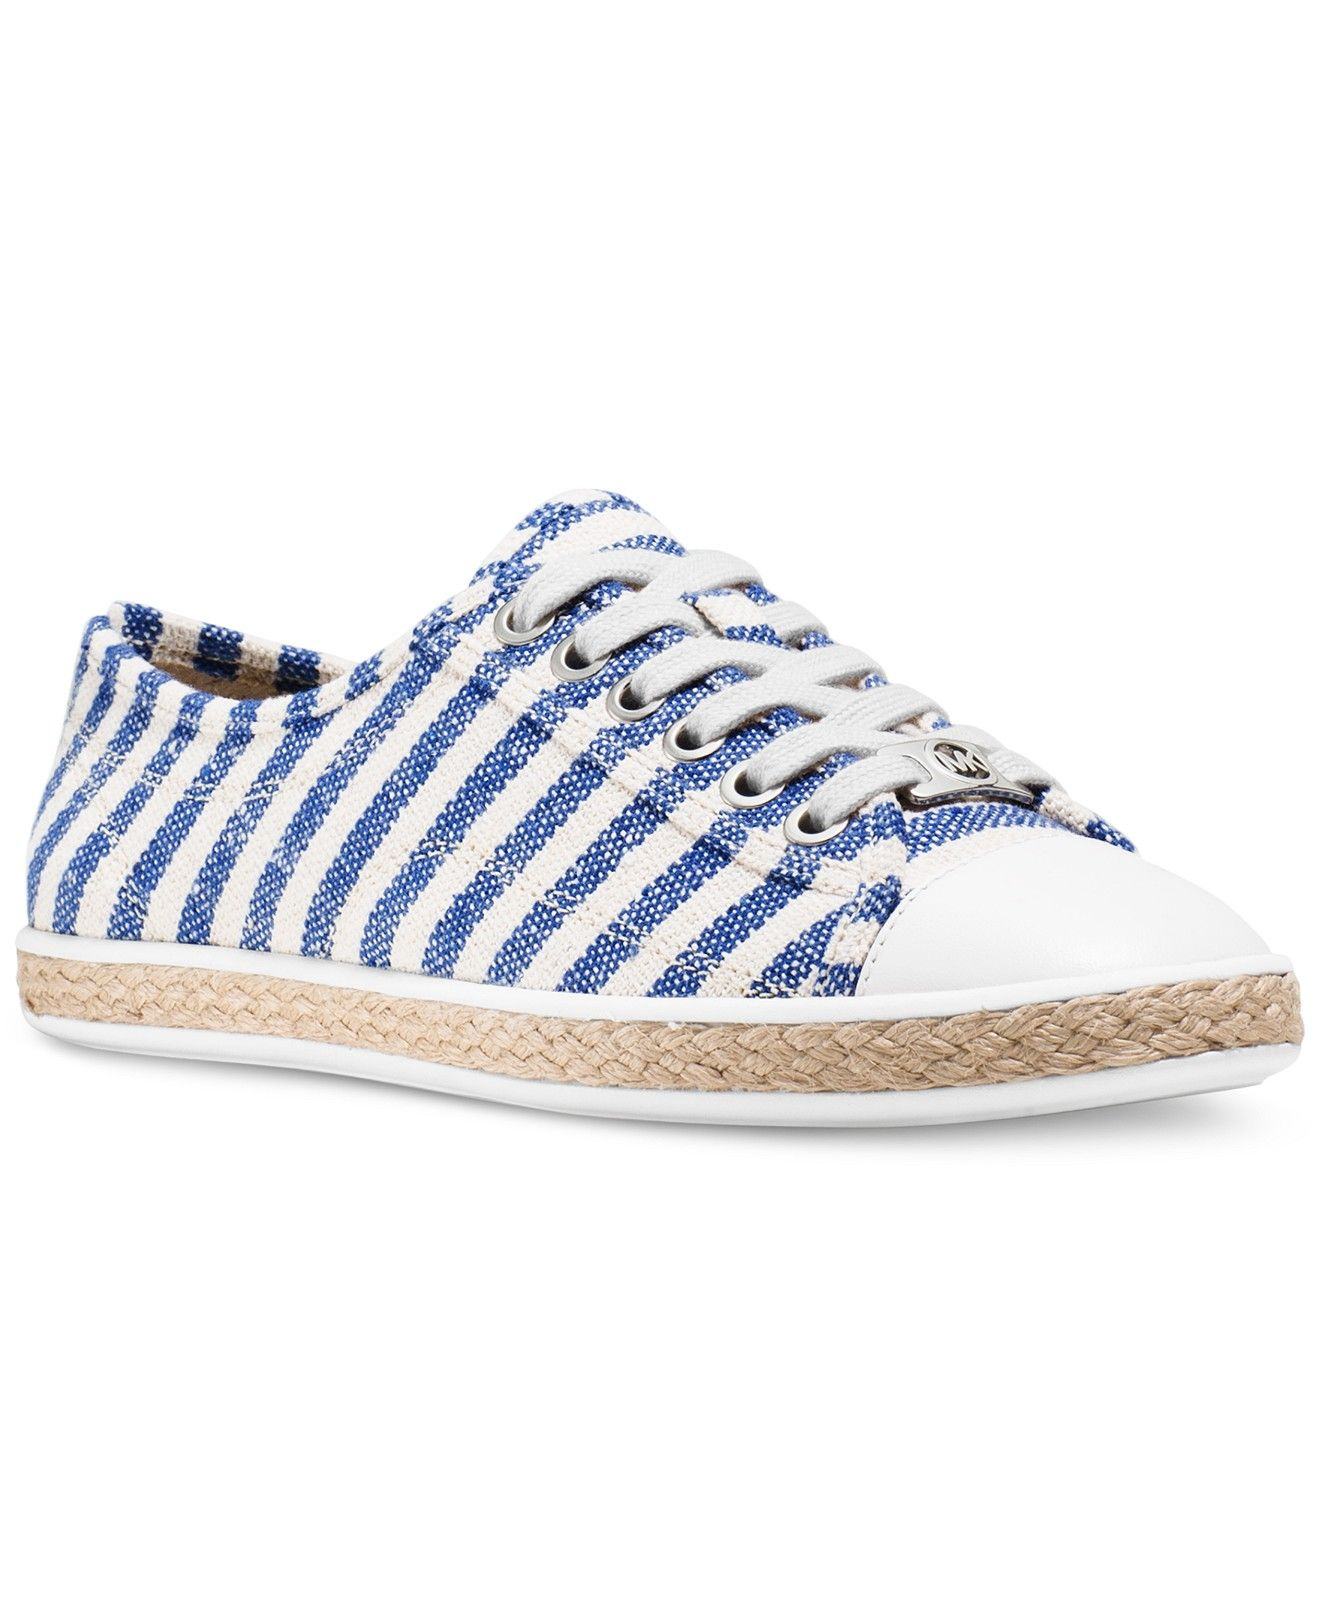 4c2875ea5e75 MICHAEL Michael Kors Kristy Lace Up Striped Espadrille Sneakers - Sneakers  - Shoes - Macy s